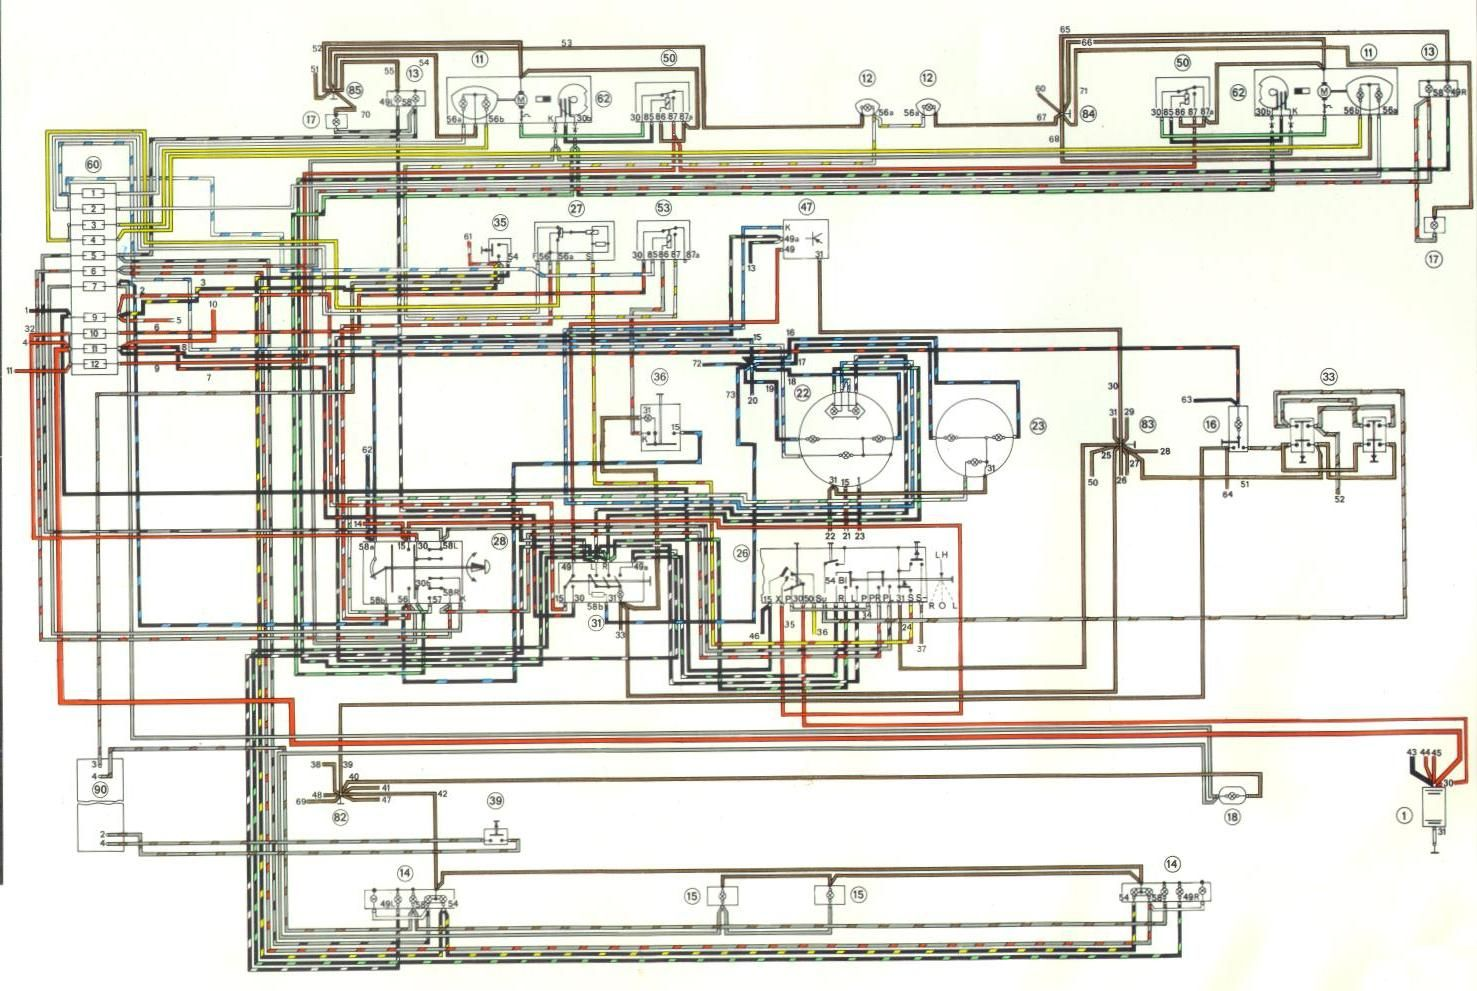 medium resolution of 1974 porsche 914 engine diagram blog wiring diagramelectrical diagram 73 porsche 914 part 1 misc porsche